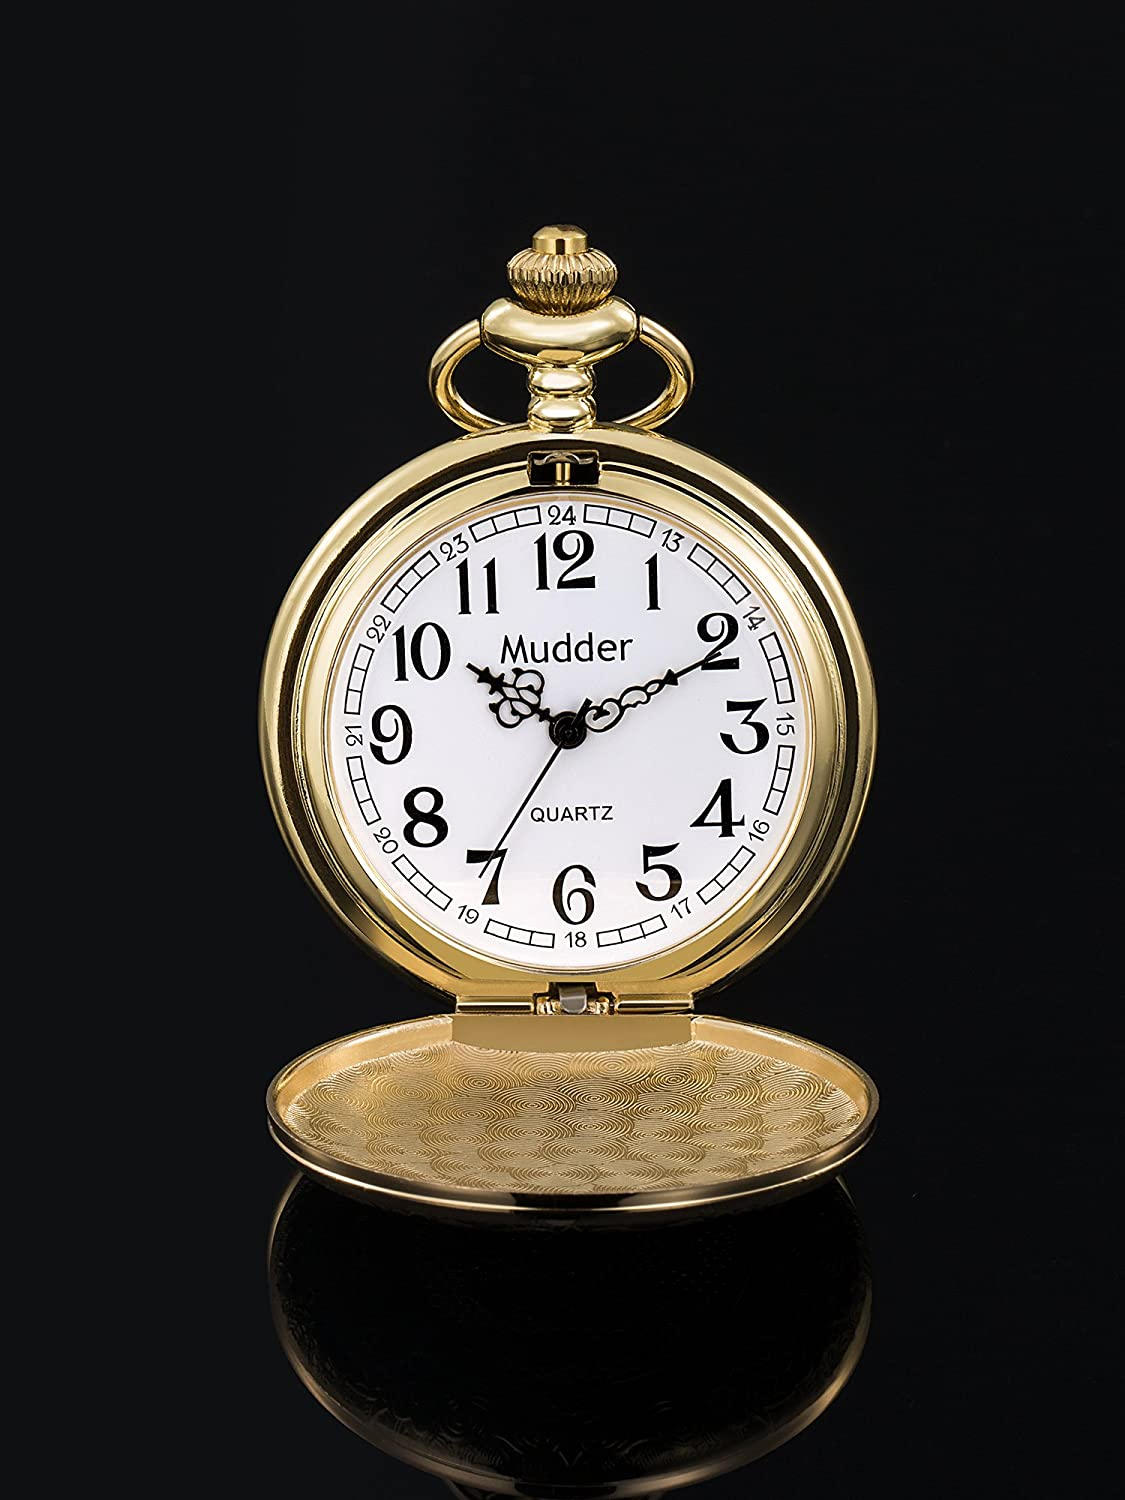 Edwardian Men's Accessories Mudder Vintage Stainless Steel Quartz Pocket Watch Chain $11.99 AT vintagedancer.com